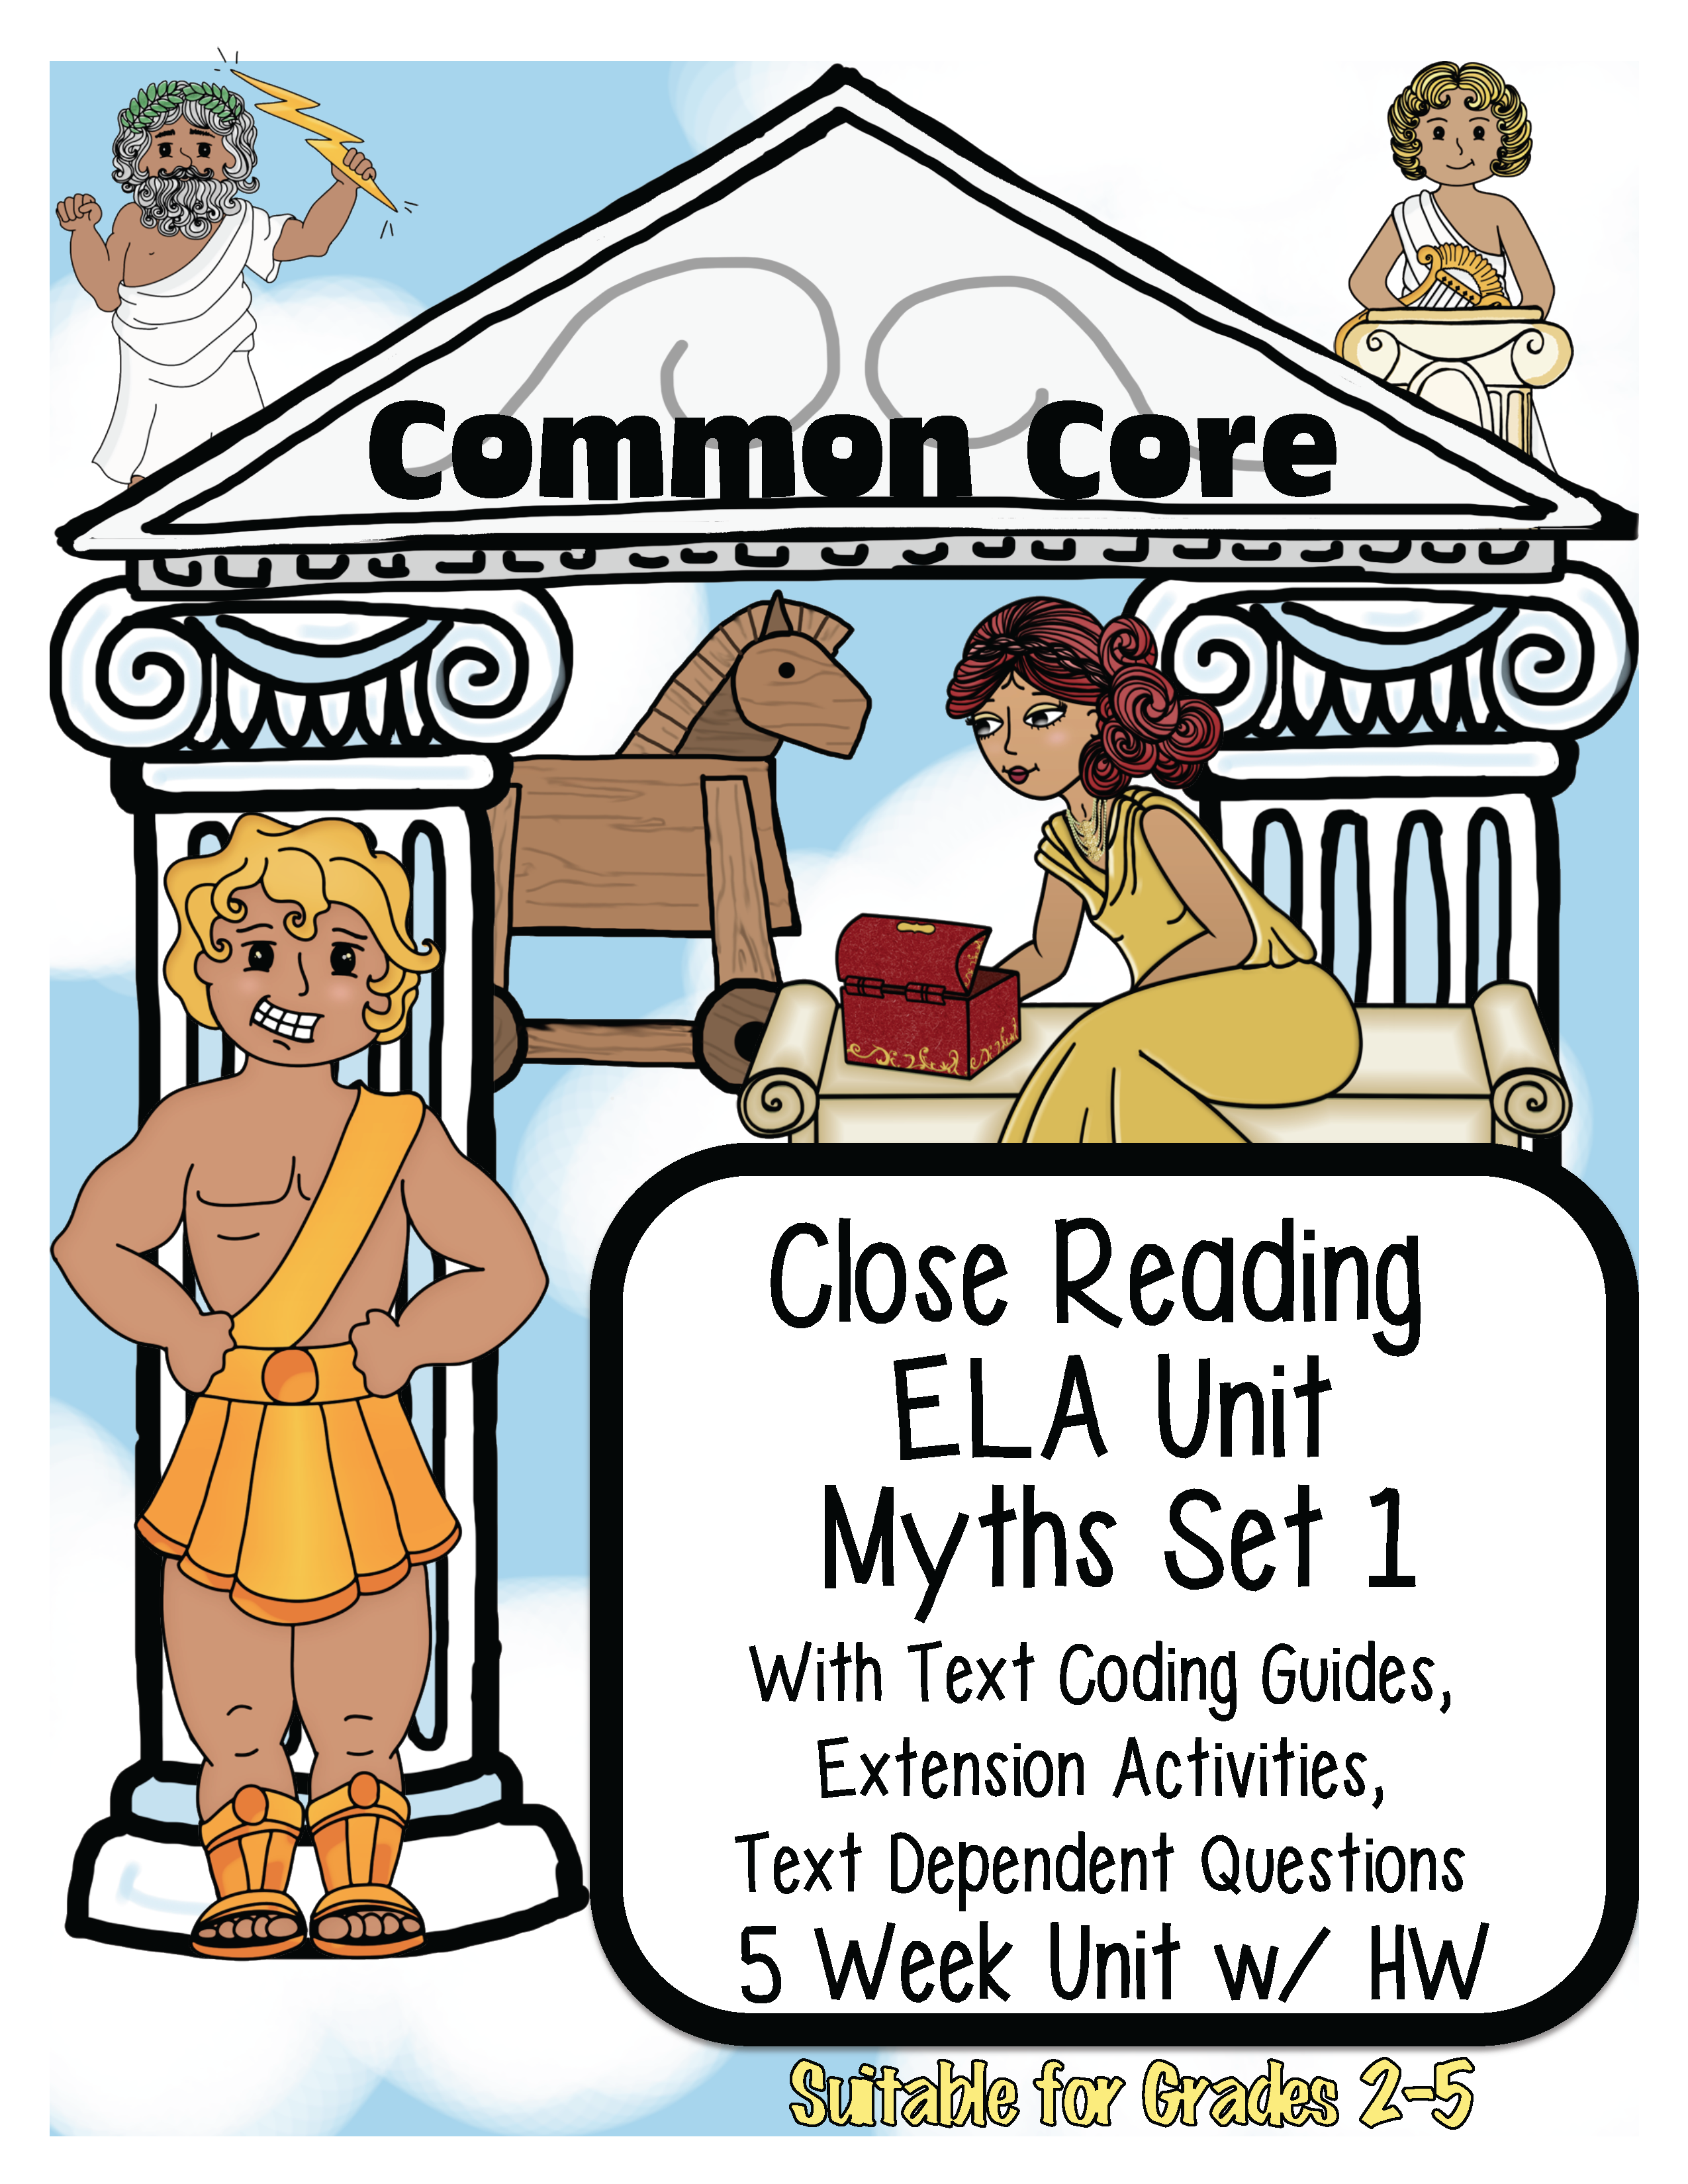 5 Passages Each With Text Coding Guides For Close Reading Vocabulary Cards For Each Story And